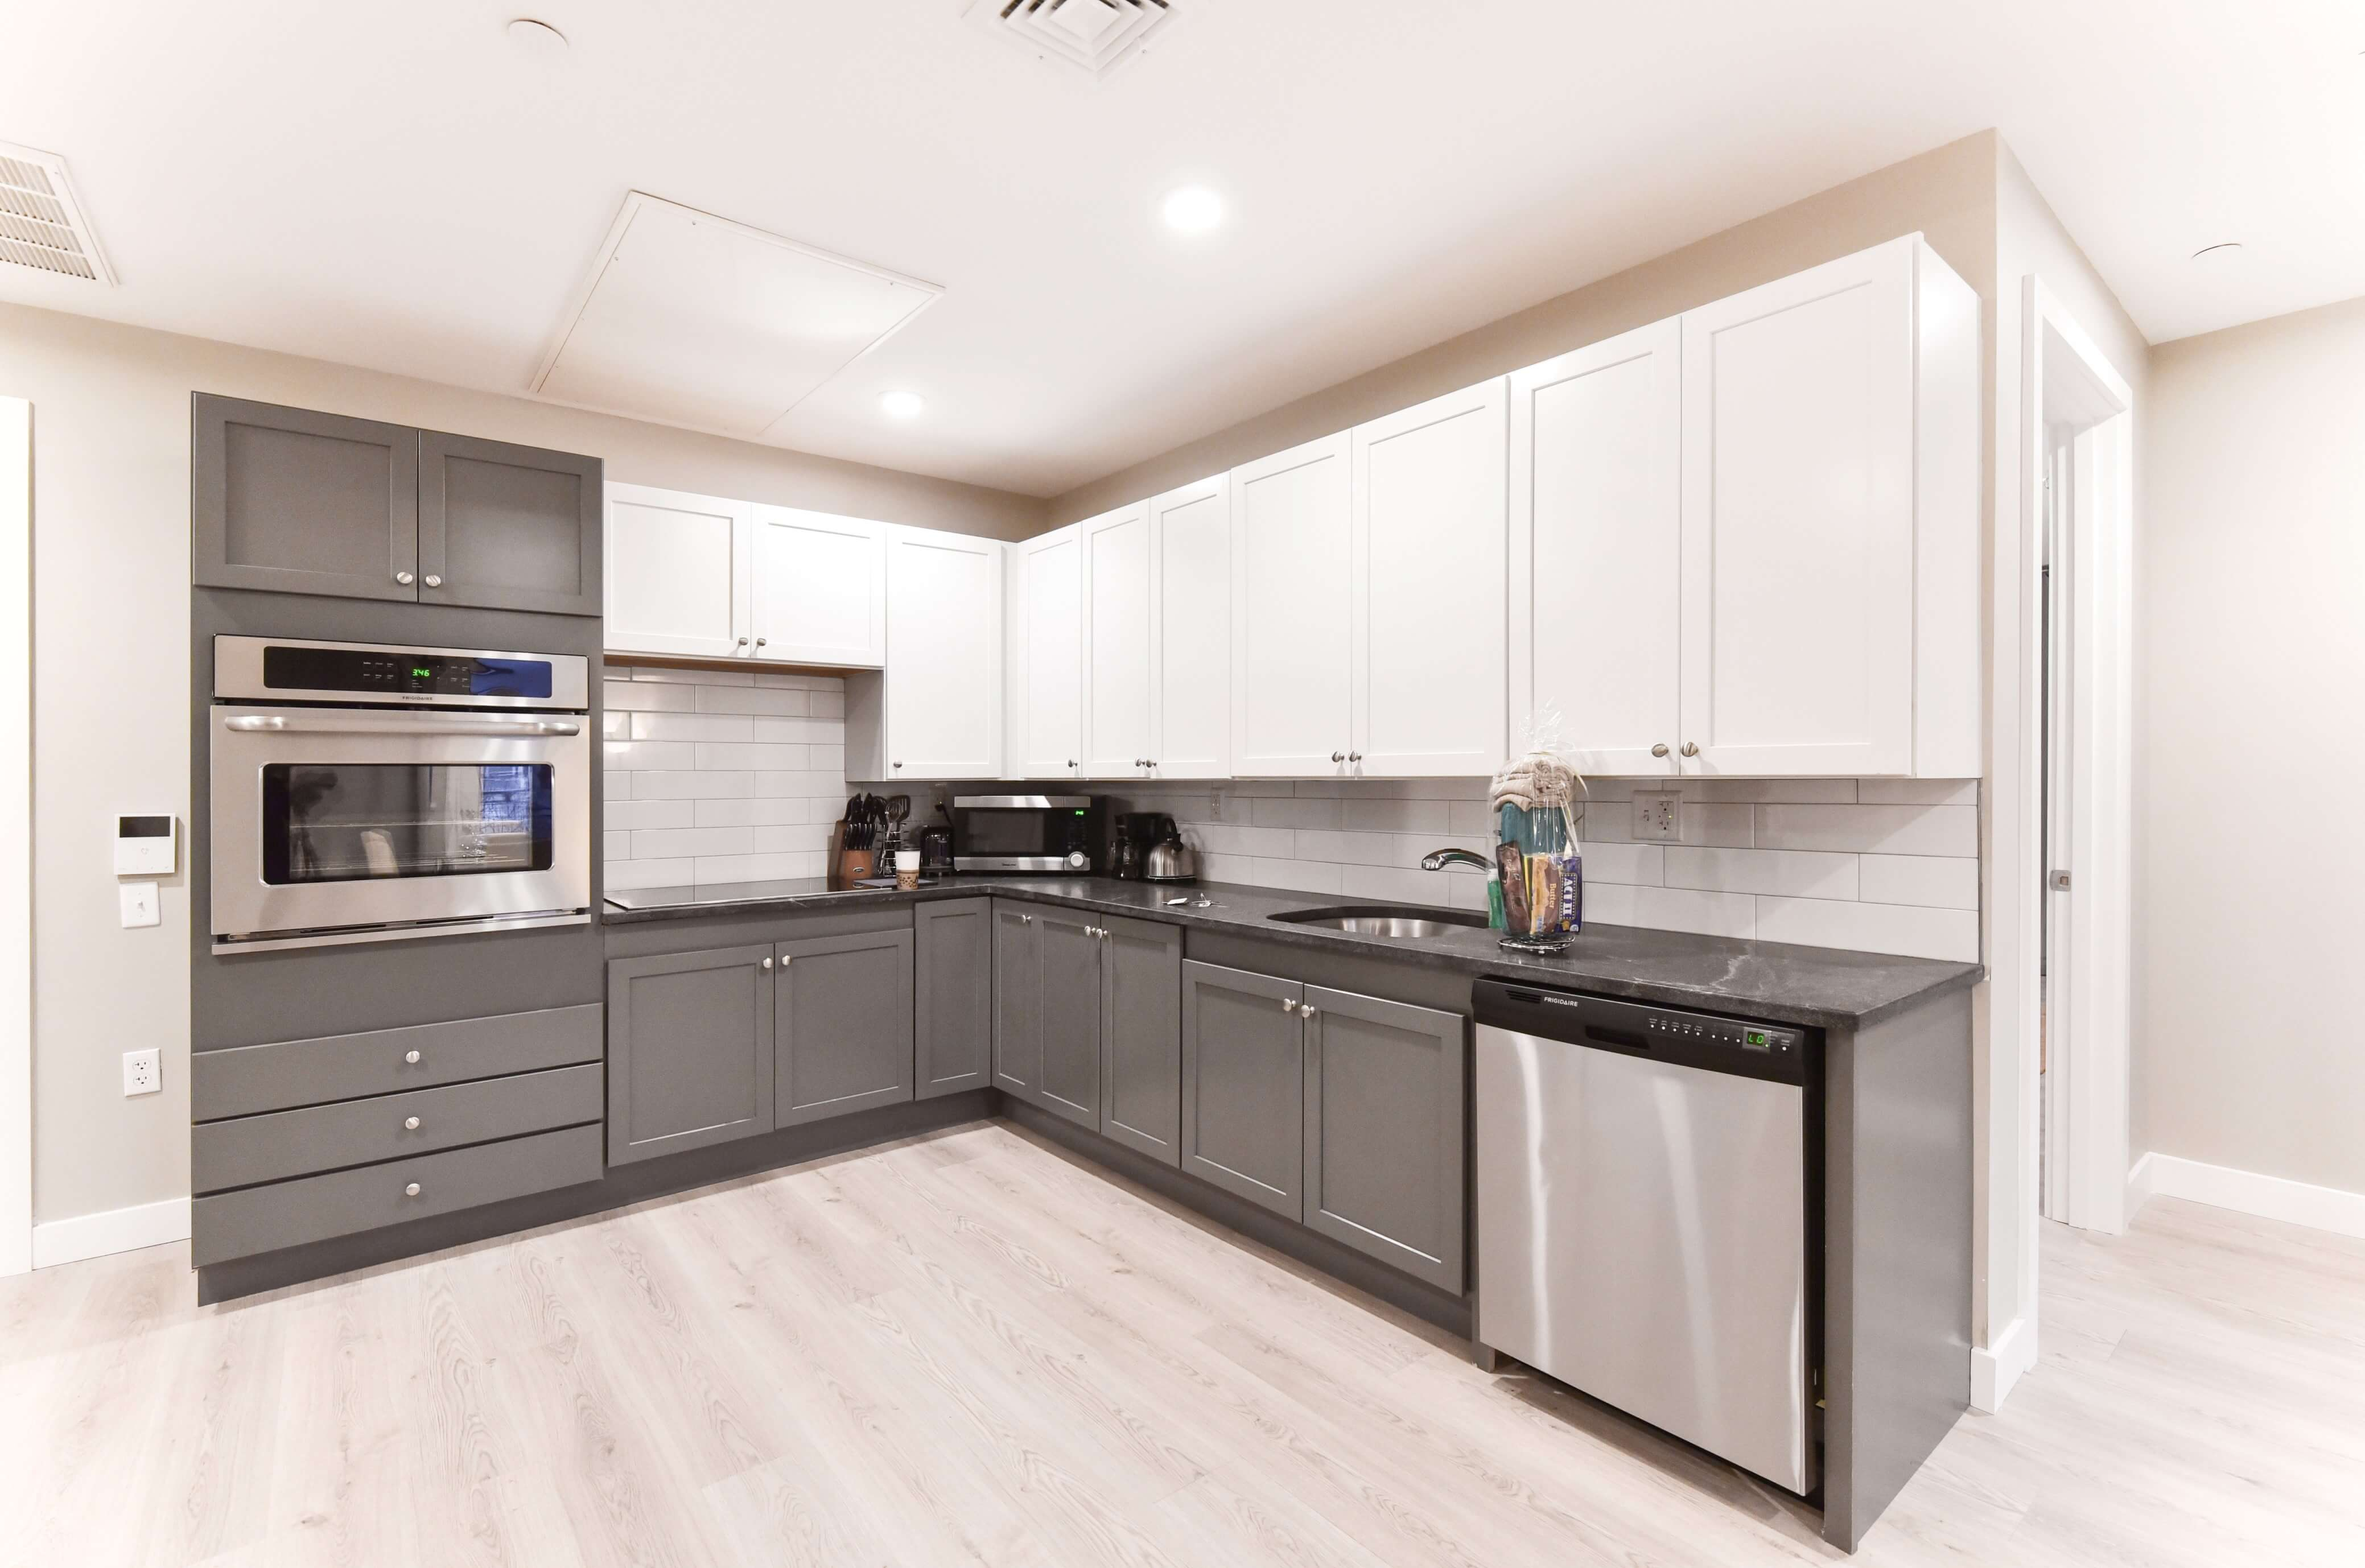 image 5 furnished 5 bedroom Apartment for rent in Jamaica Plain, Boston Area